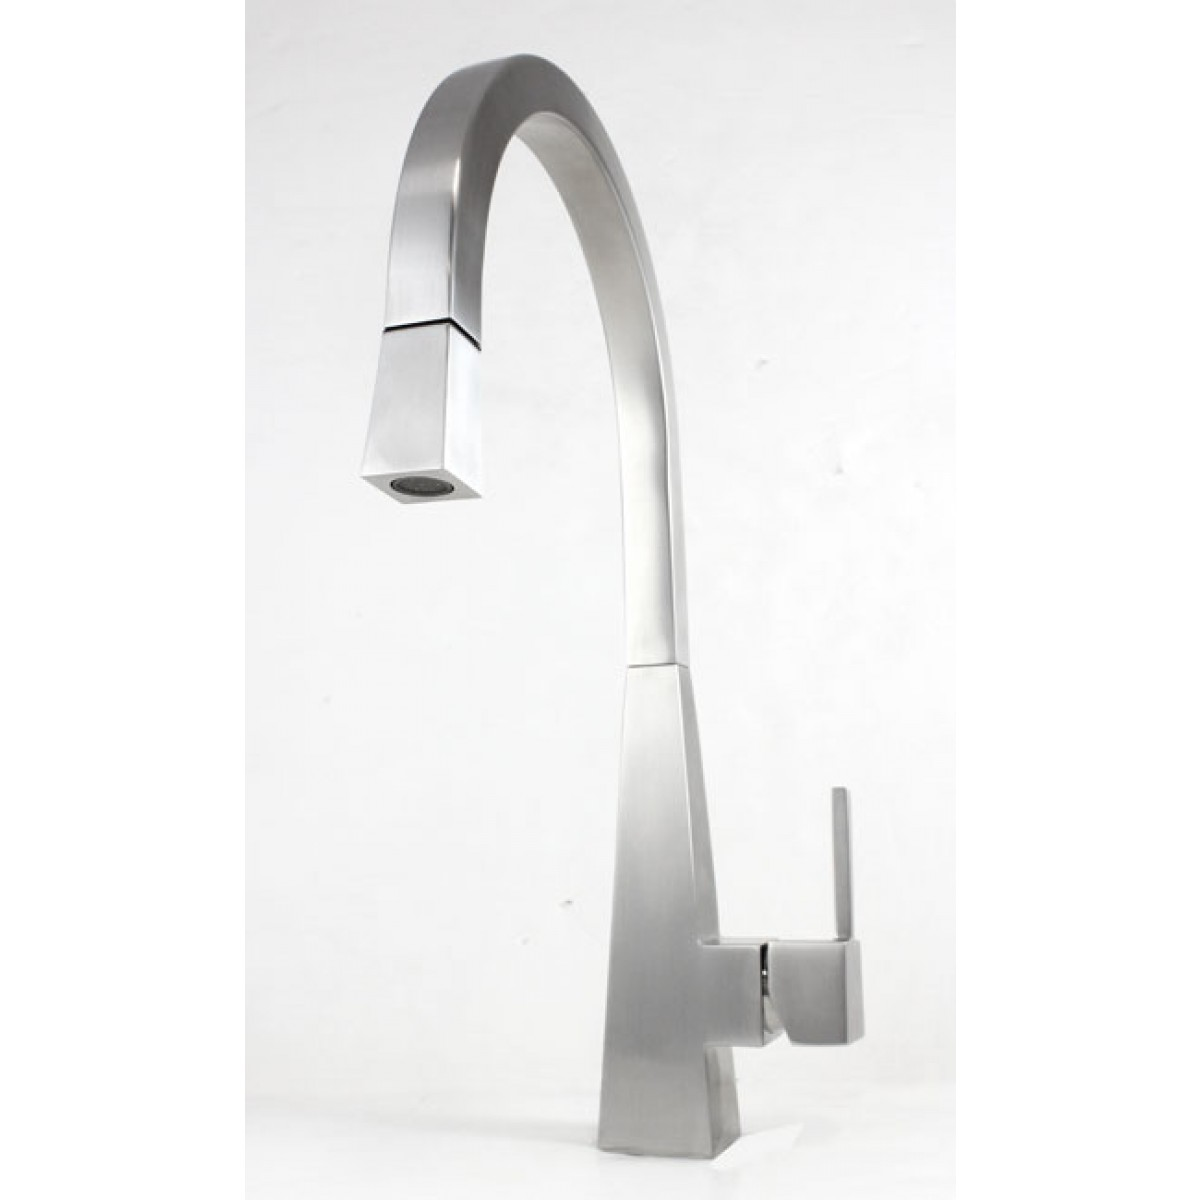 Imperial Faucets Ariel Imperial Design Lead Free Stainless Steel Single